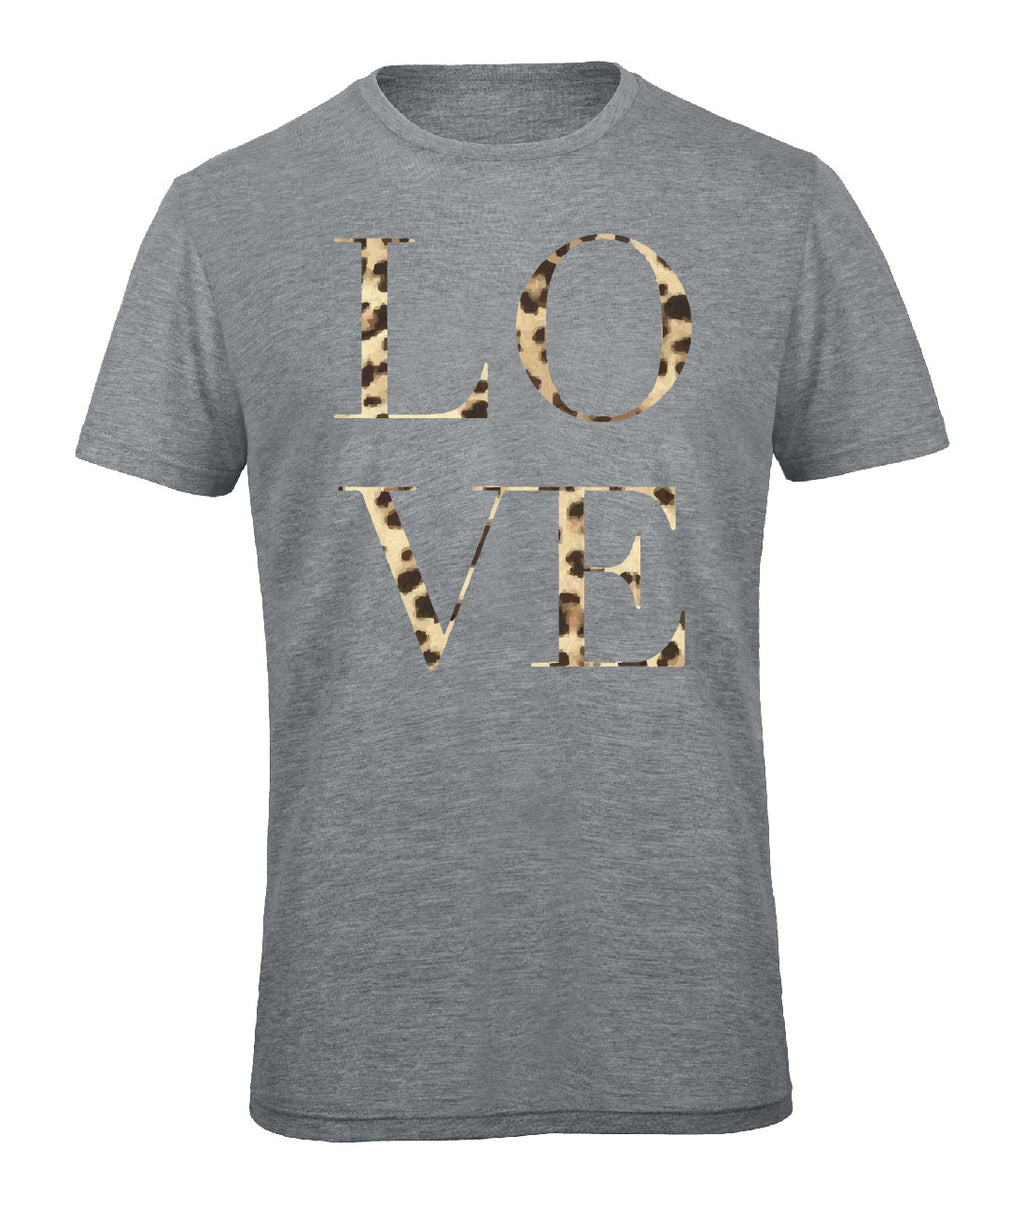 Leopard Love Crew Neck - Available in Grey Tee